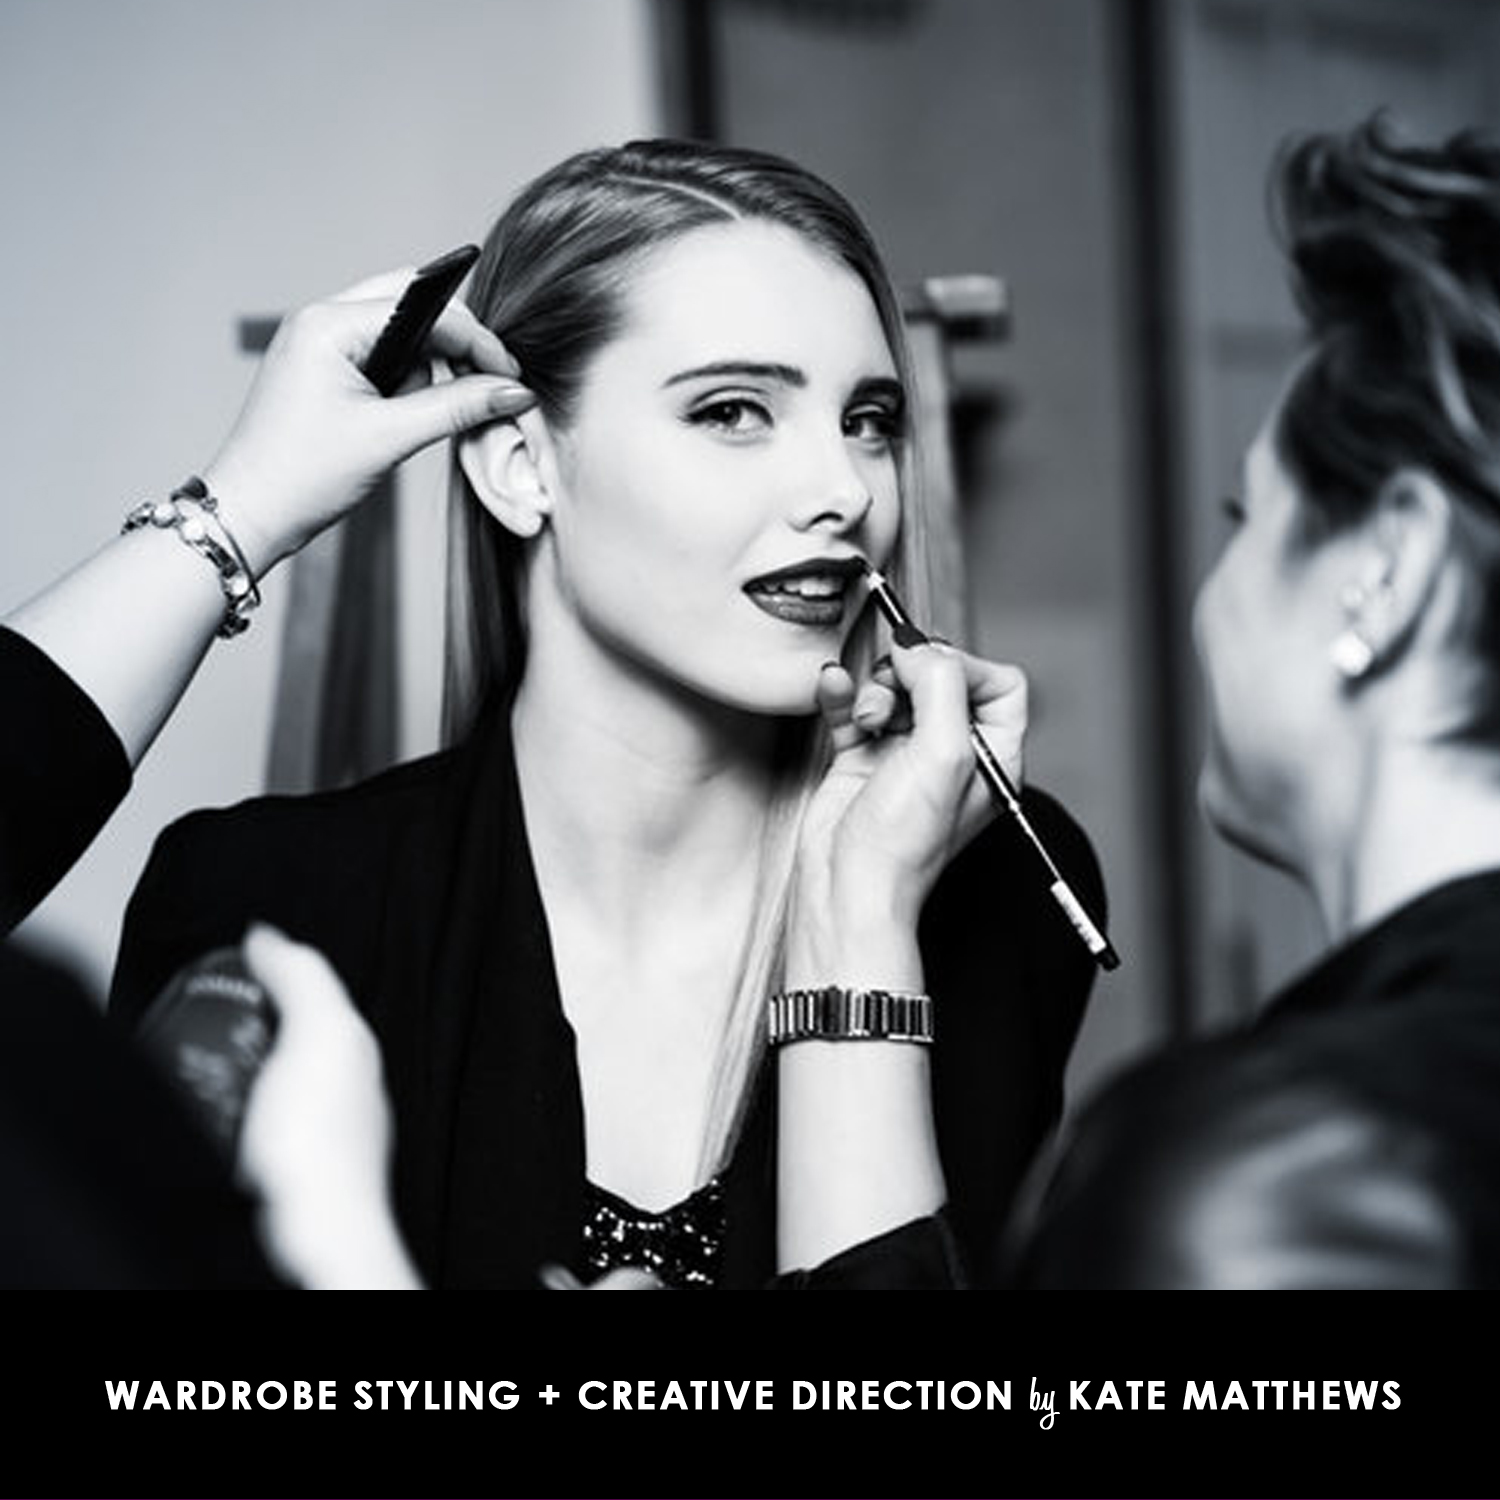 WARDROBE-STYLING-CREATIVE-DIRECTION-FASHION-WEEK-KATE-MATTHEWS